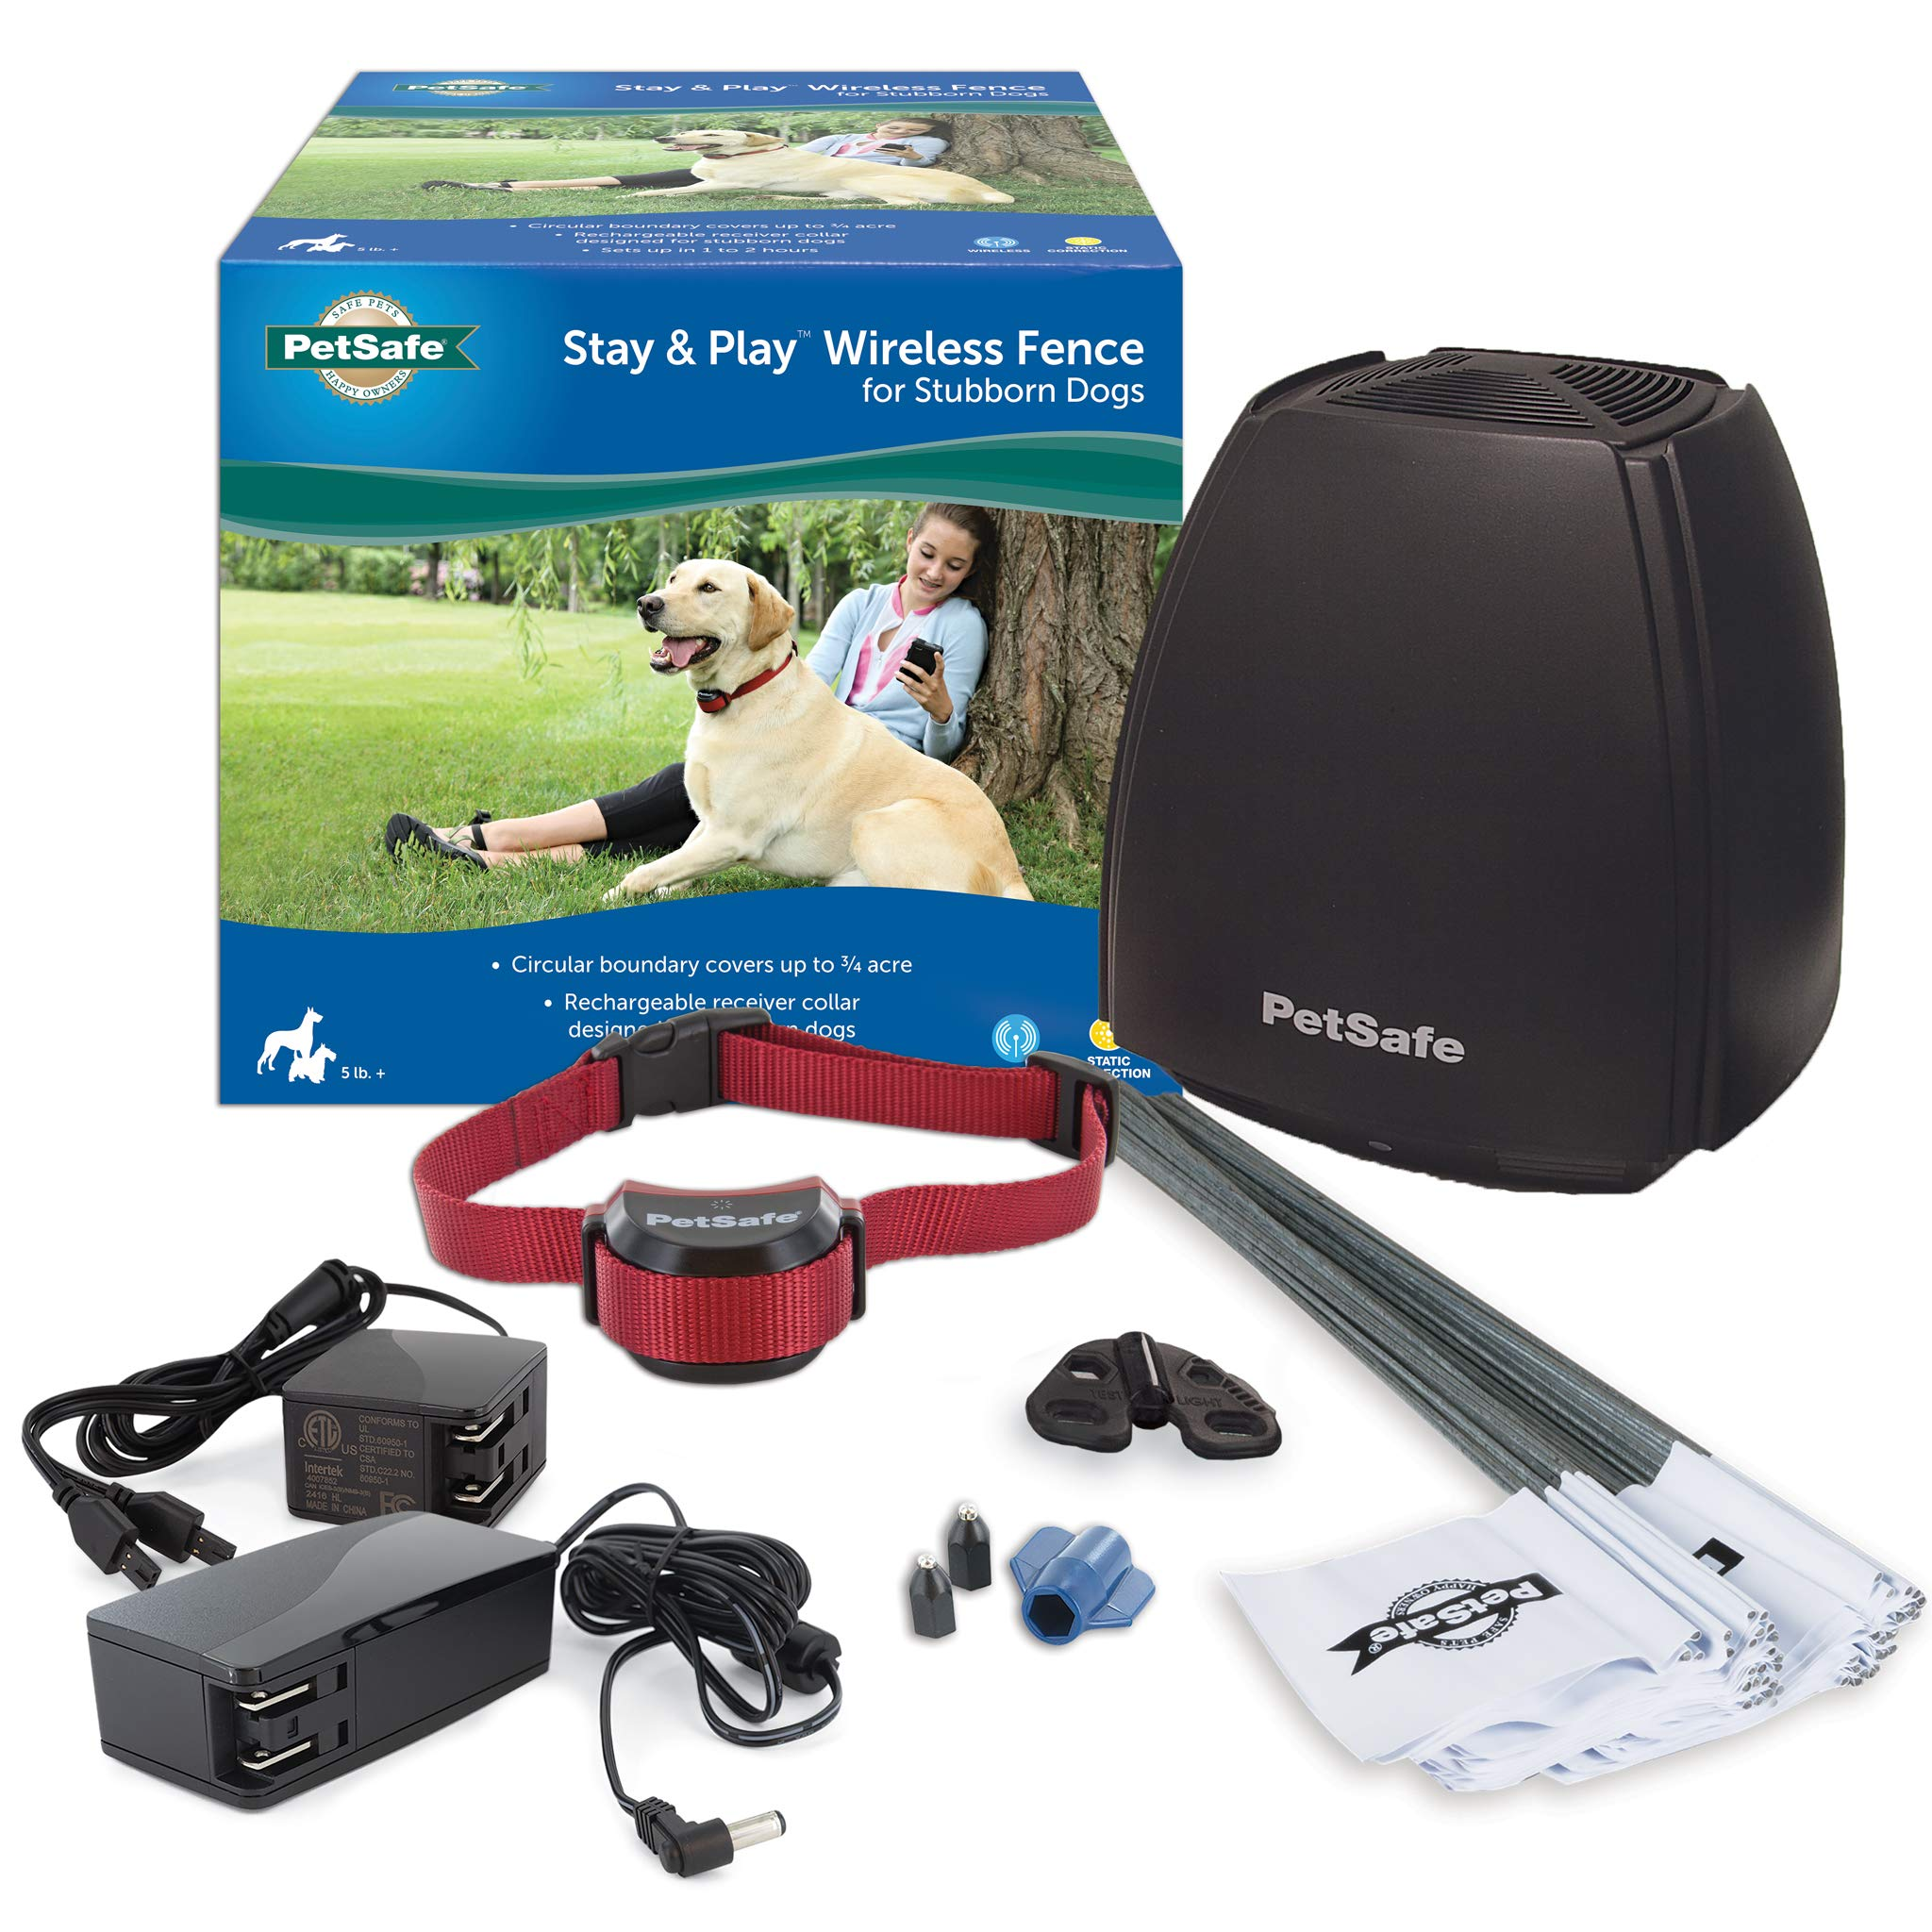 PetSafe Stay & Play Wireless Fence for Stubborn Dogs - Above Ground Electric Pet Fence - from the Parent Company of INVISIBLE FENCE Brand by PetSafe